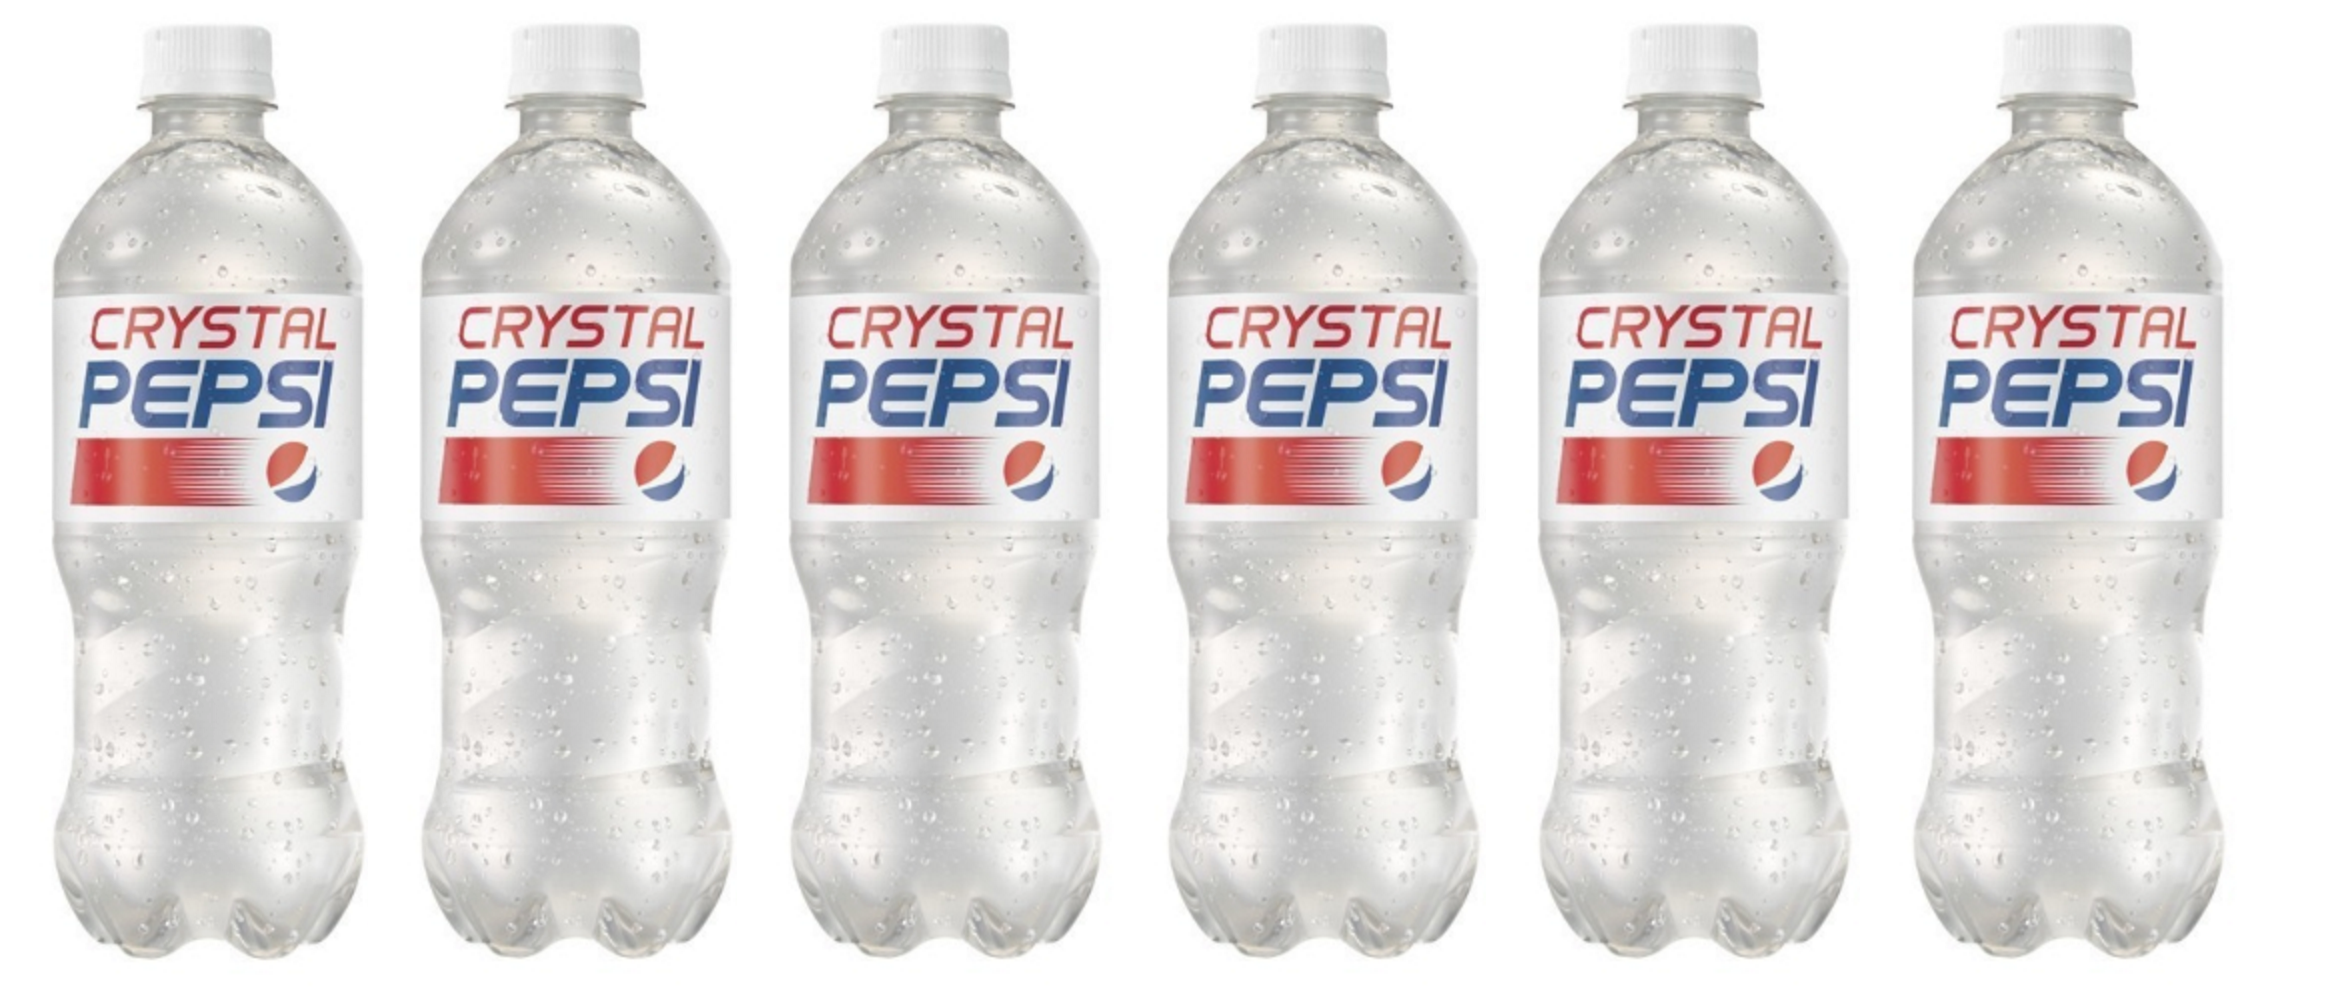 It's True: Crystal Pepsi Is Coming Back For All Those People Who Forgot They Hated It The First Time Around